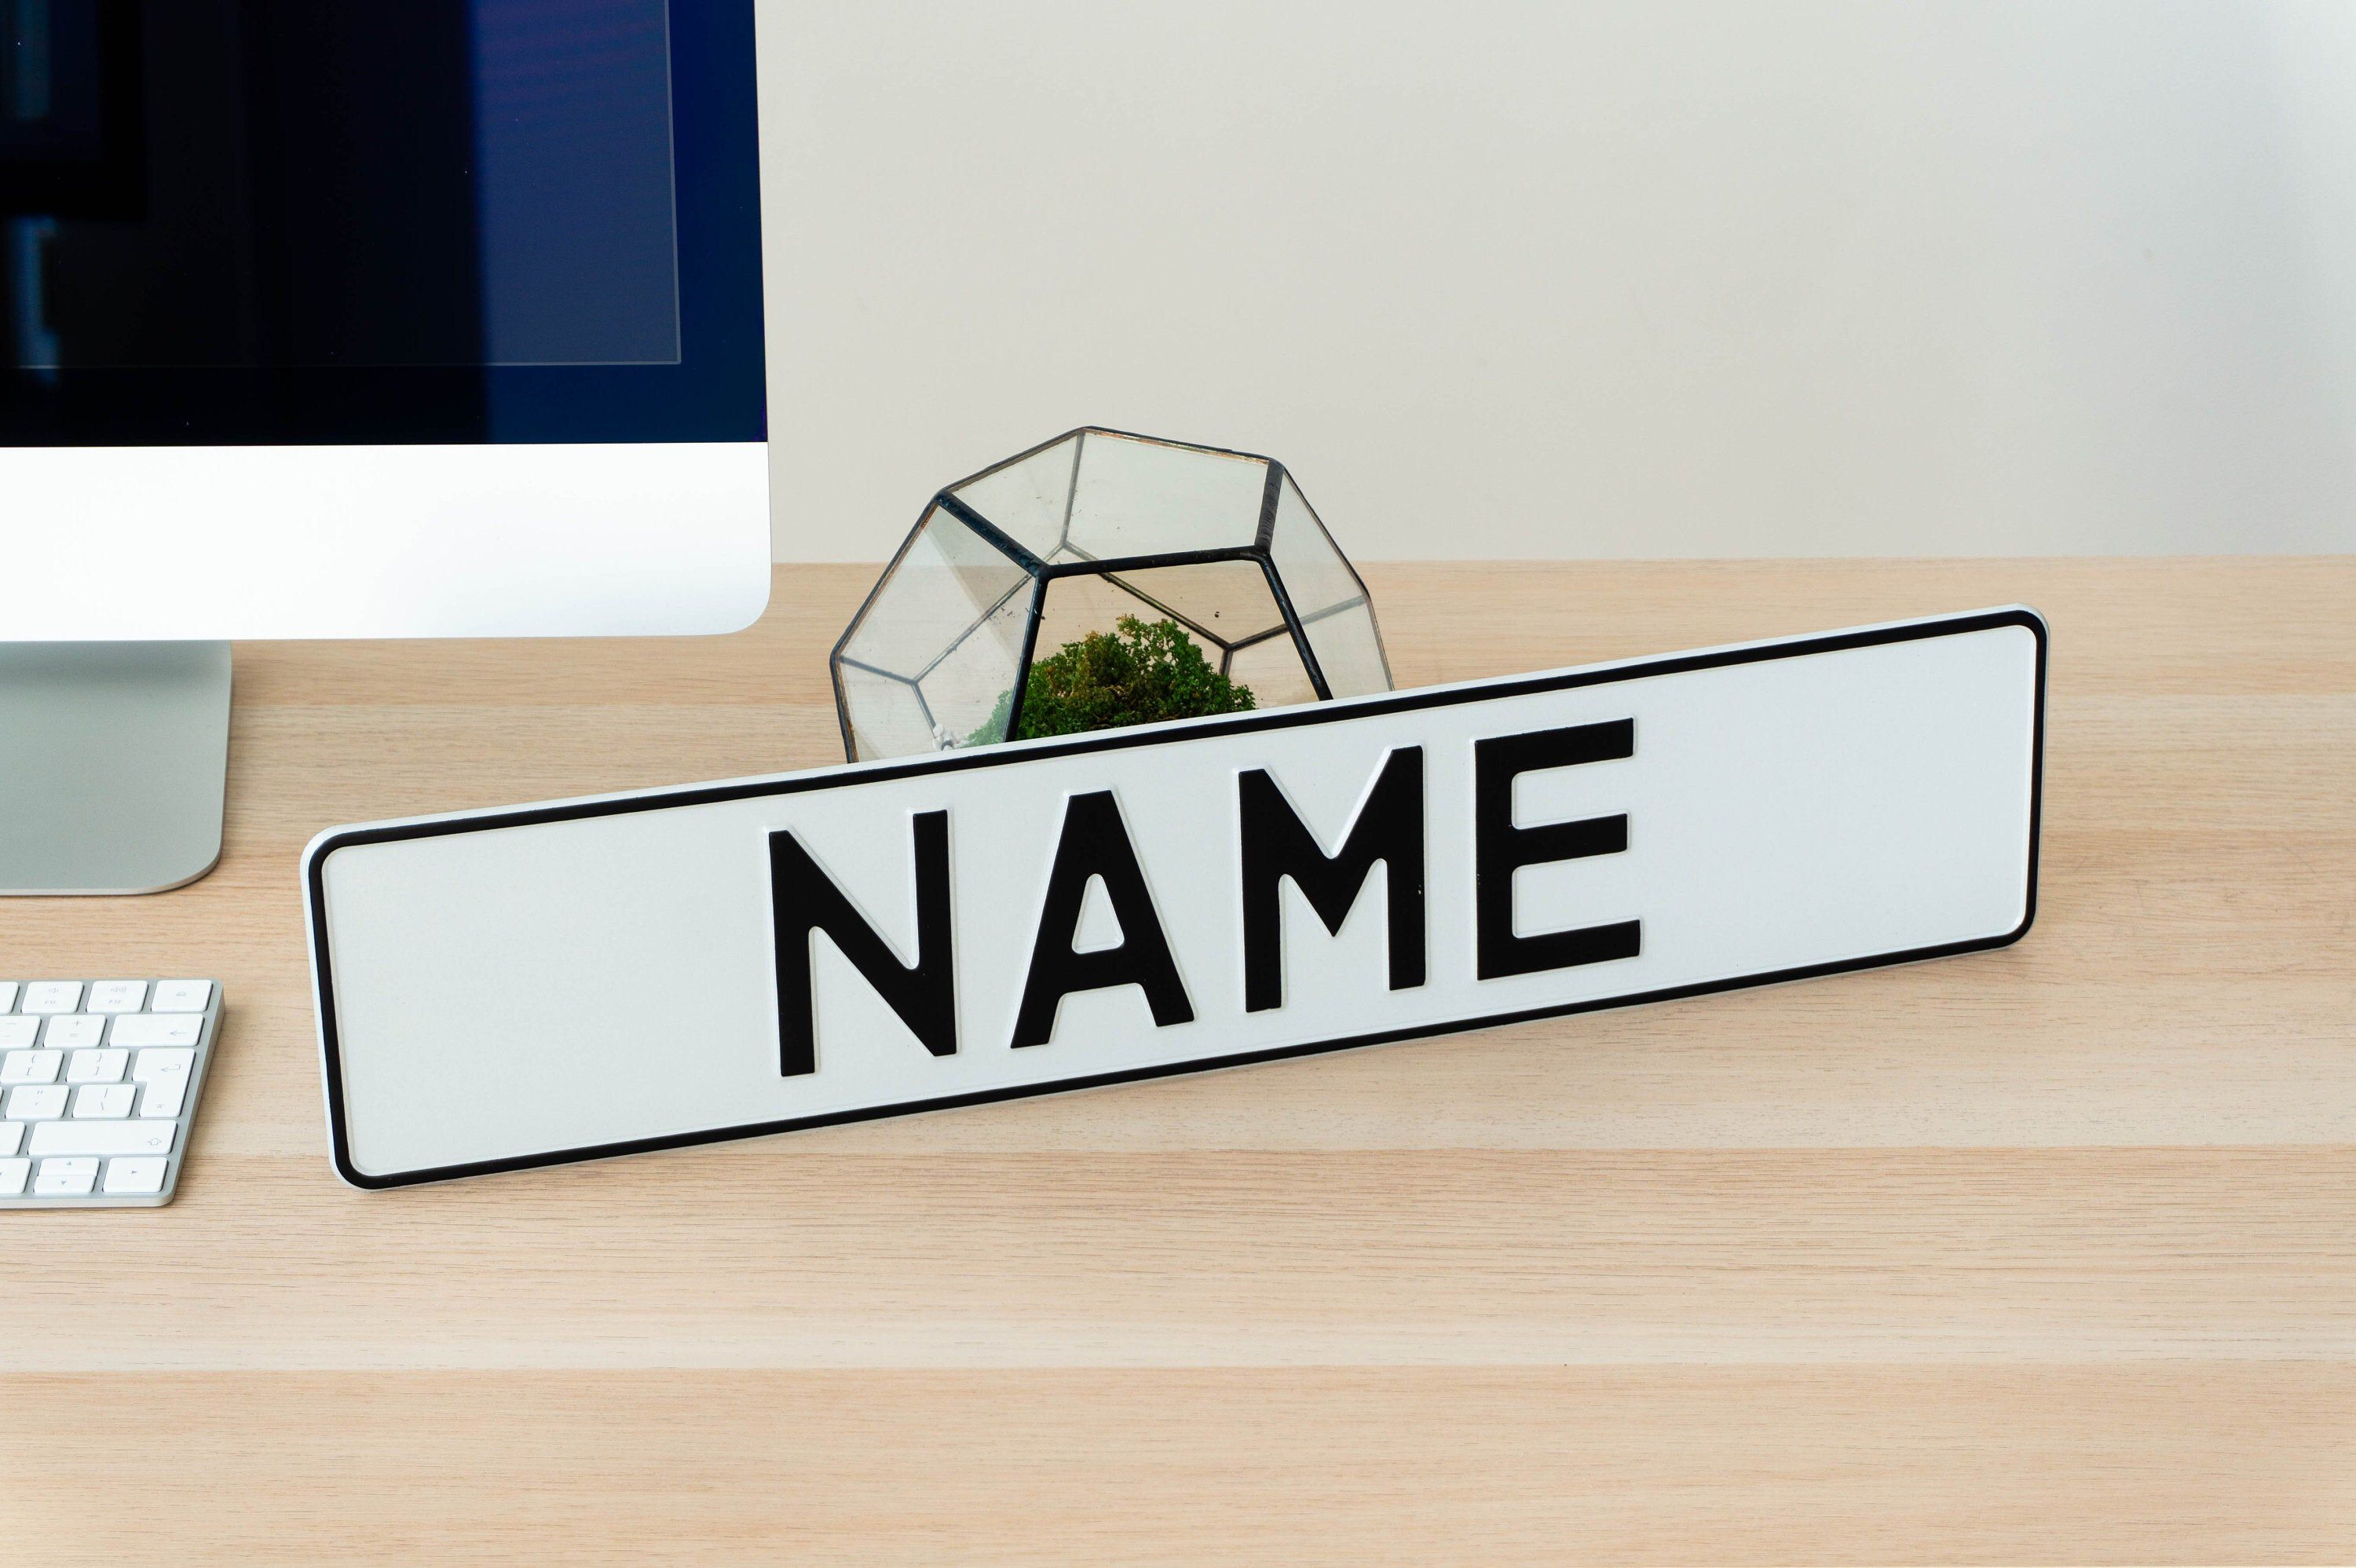 Excited to share this item from my #etsy shop: Mockup License Name White Plate Home Decor Metal Art Personalized Delete Cover Interior Funny Custom Gift Aluminum Gift Papa Dad Brother Boy #everythingelse #white #birthday #black #valentinesday #homemetal #metalplate #funnylicense #funnyplate